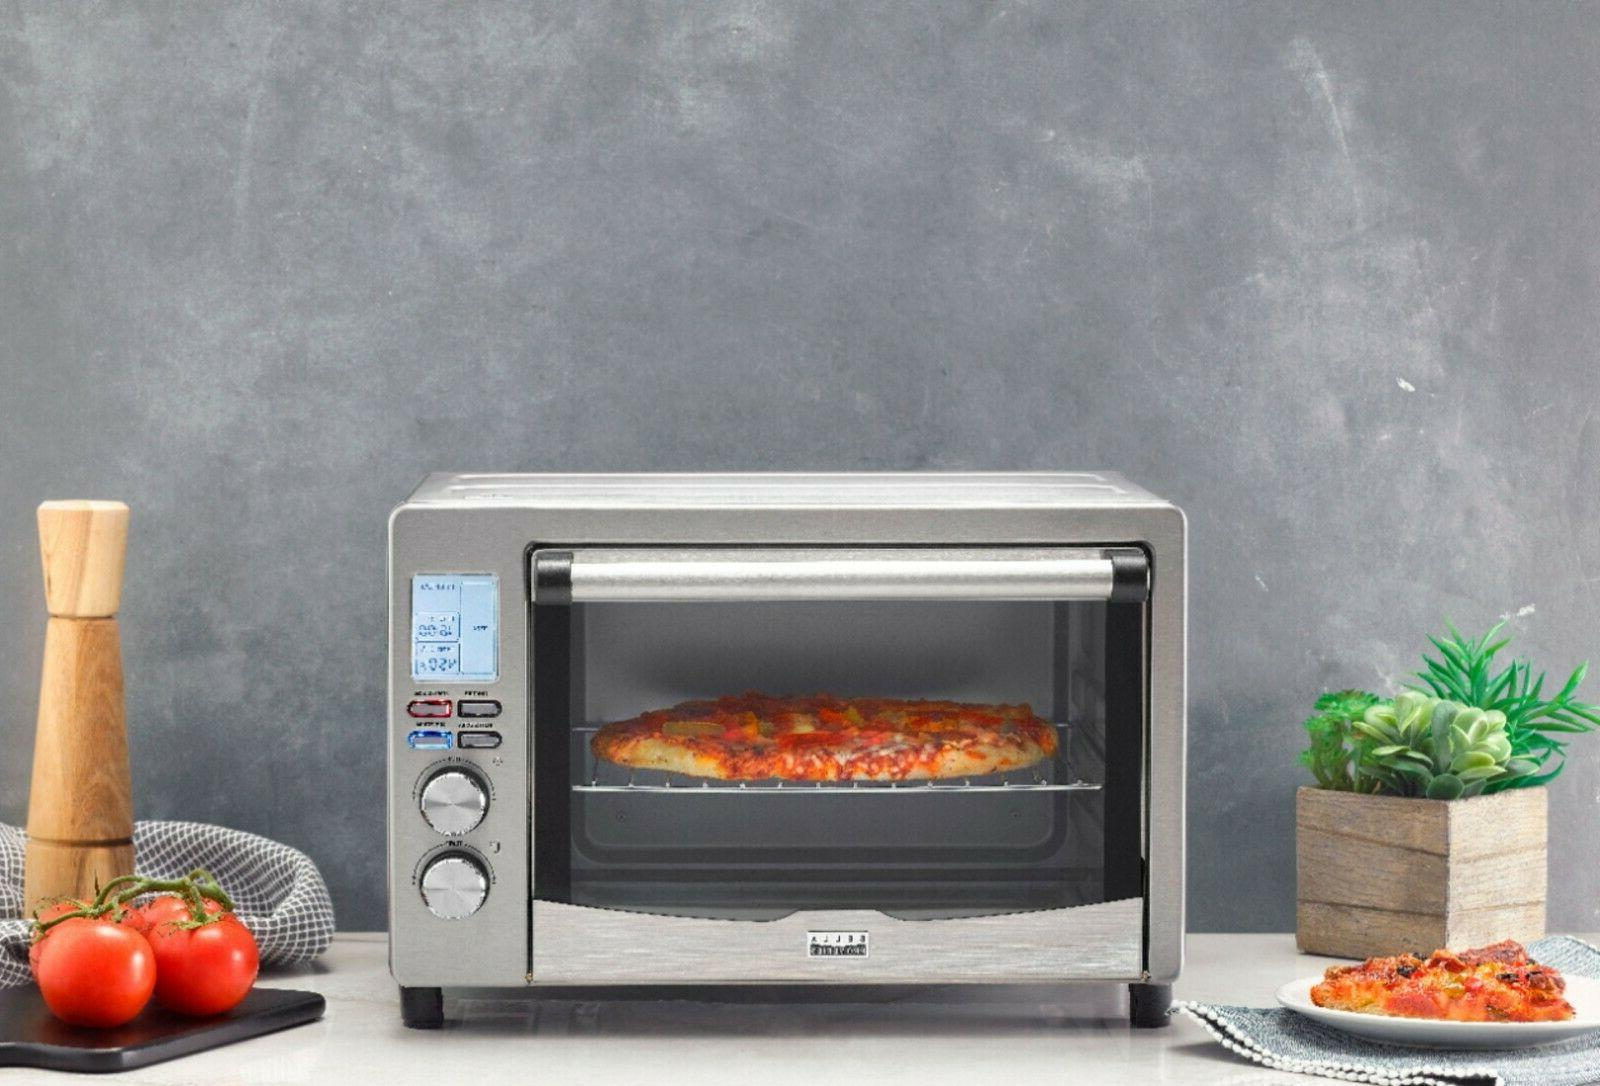 6 Slice 0.8 cu. ft Toaster Oven Stainless Steel 9 Pro Series